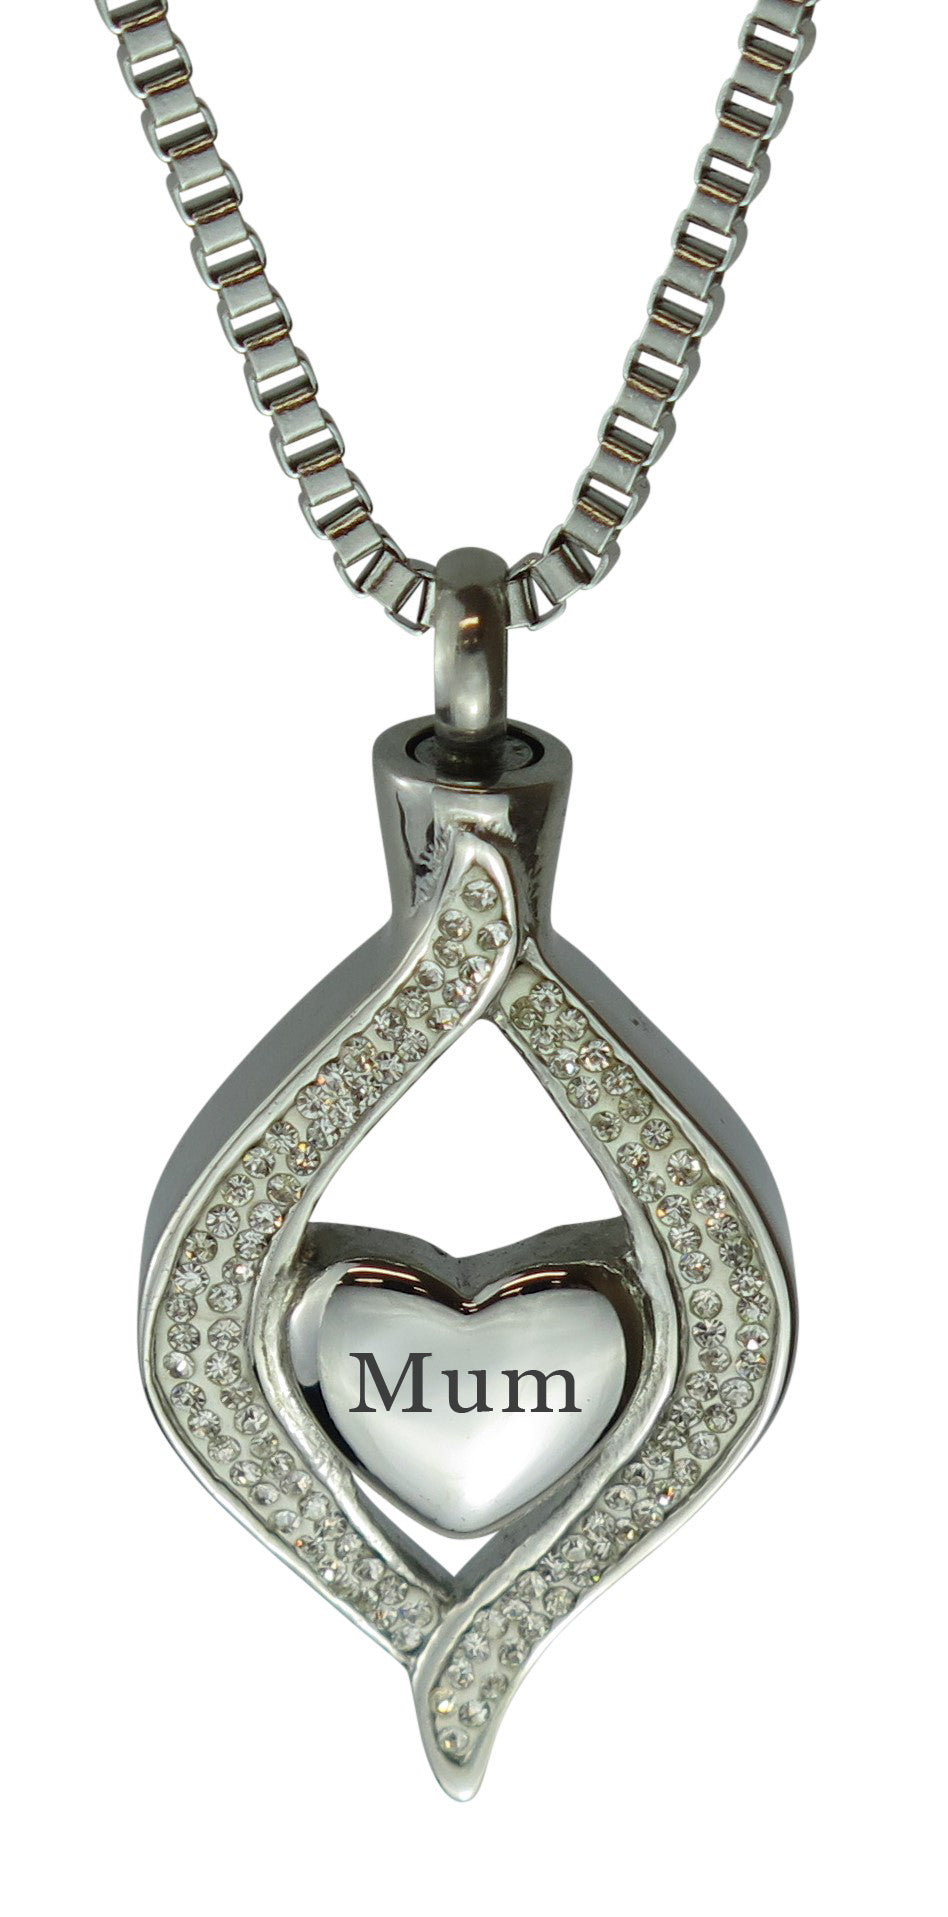 Mum Diamond Heart Cremation Urn Pendant